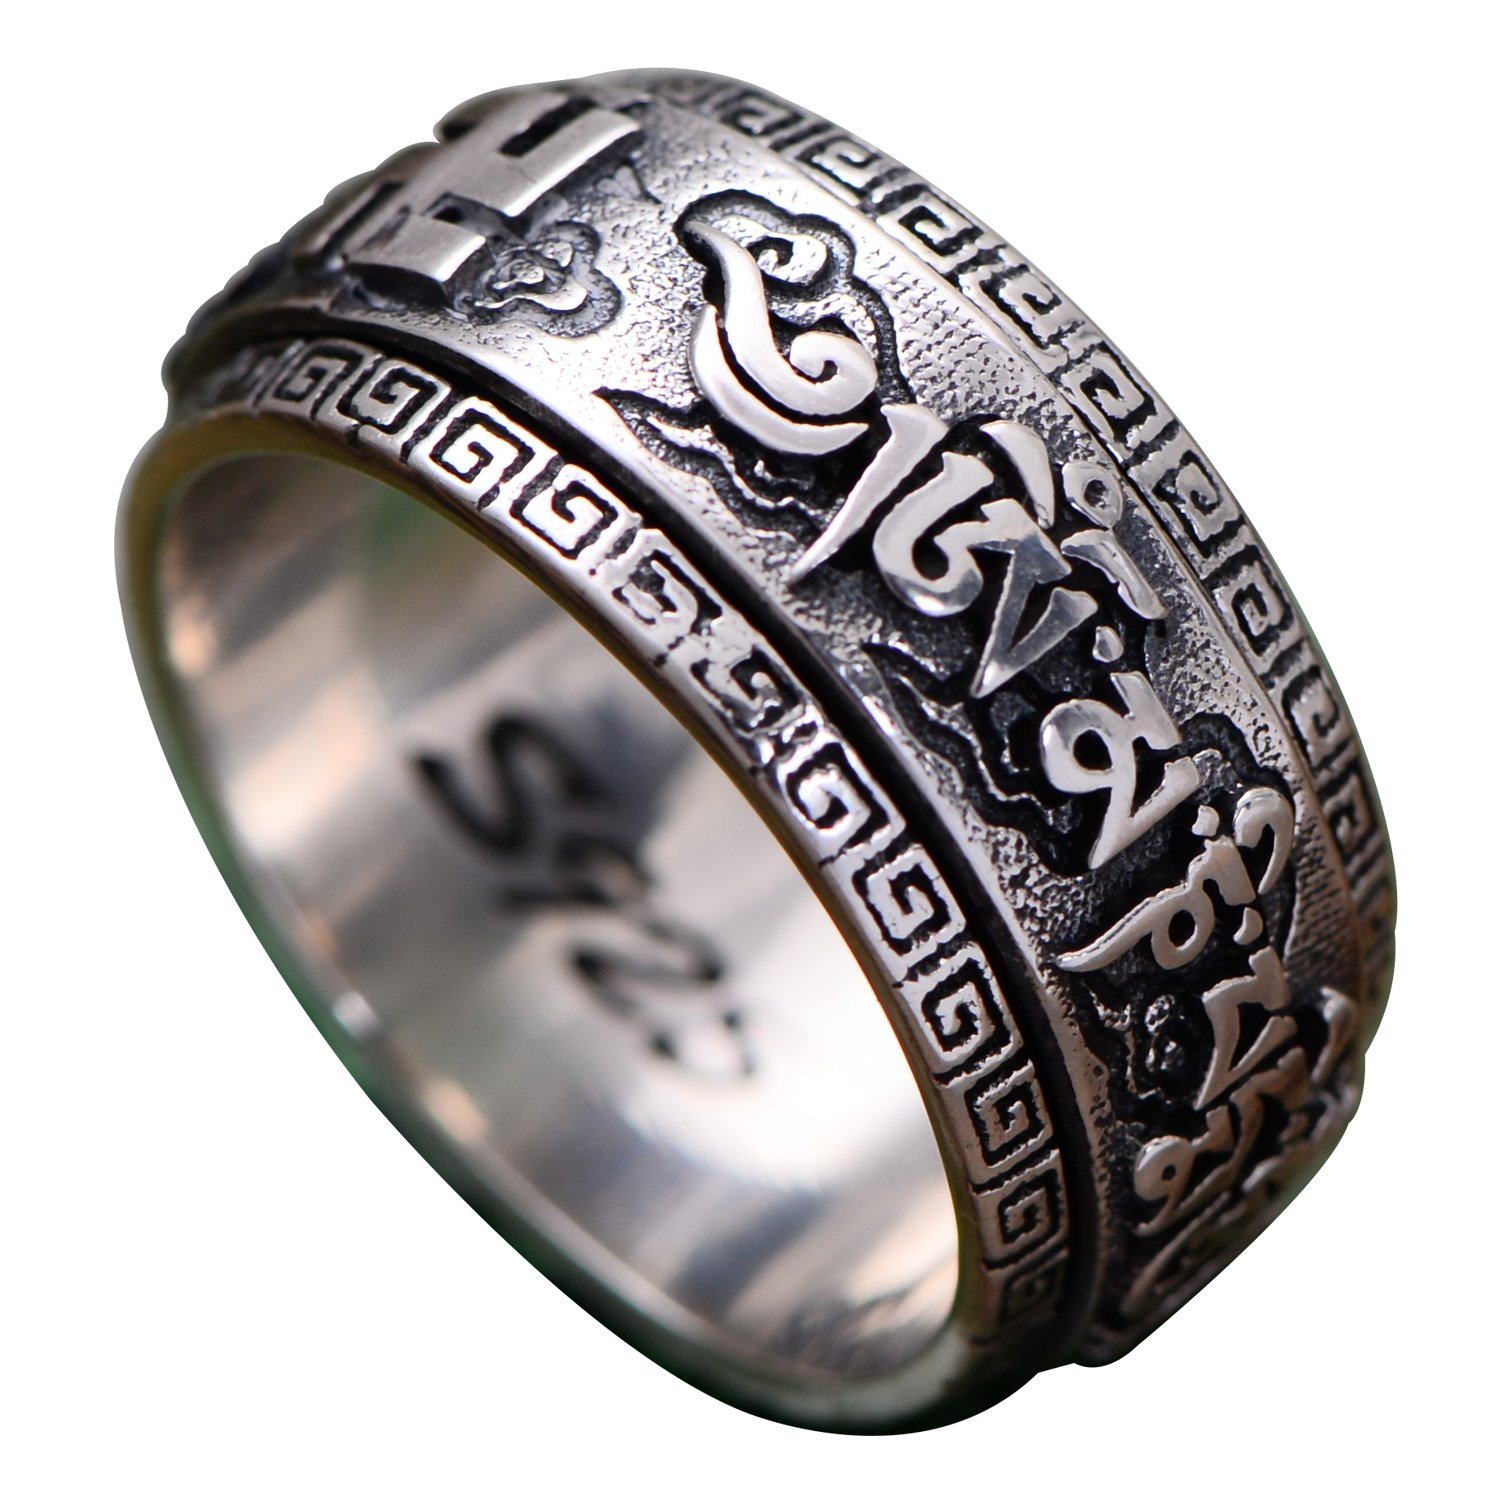 FORFOX Vintage 925 Sterling Silver Buddhism Om Mani Padme Hum Spinner Ring Engraved Swastika 10.5